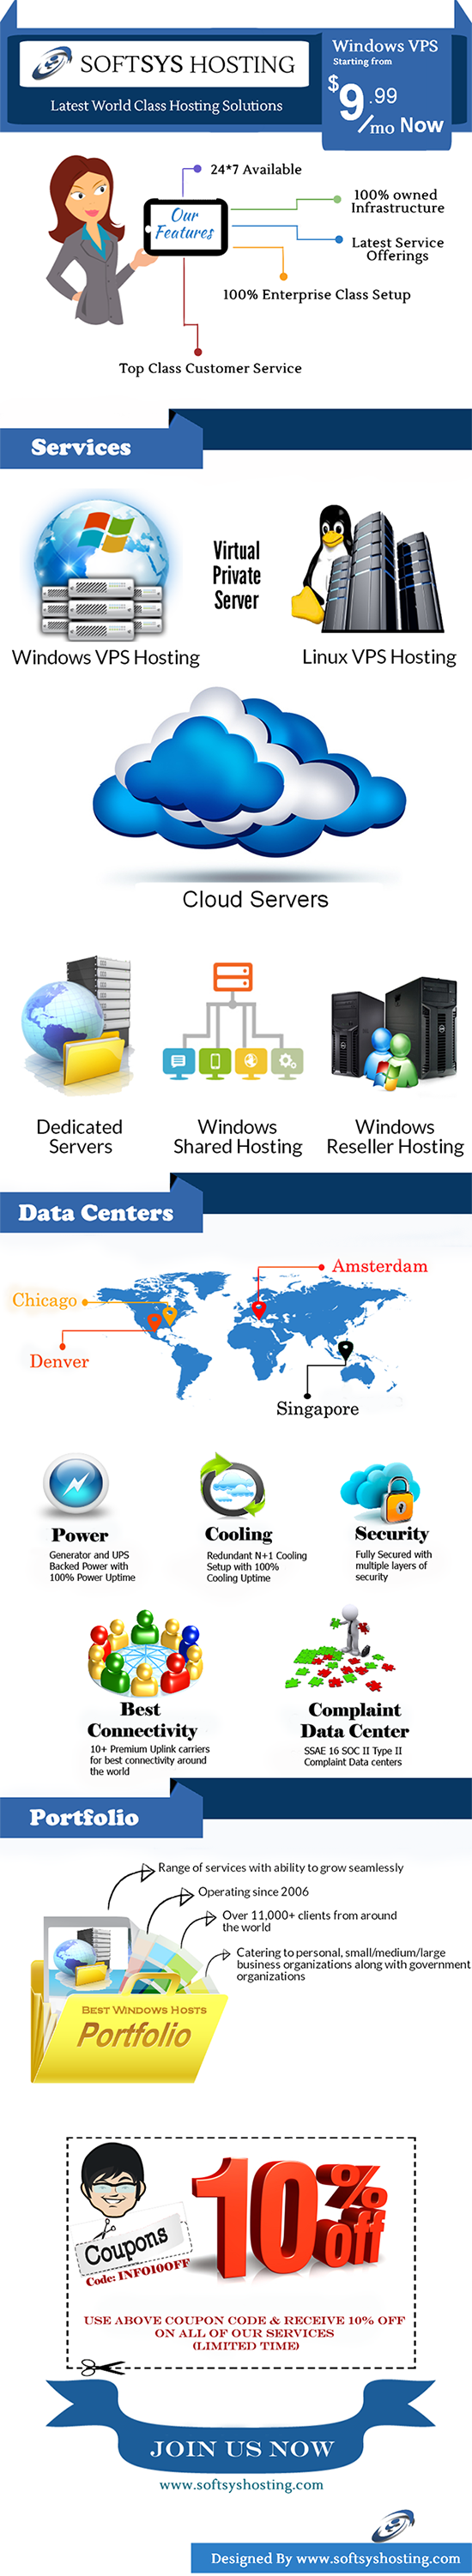 Softsys Hosting Overview Infographics